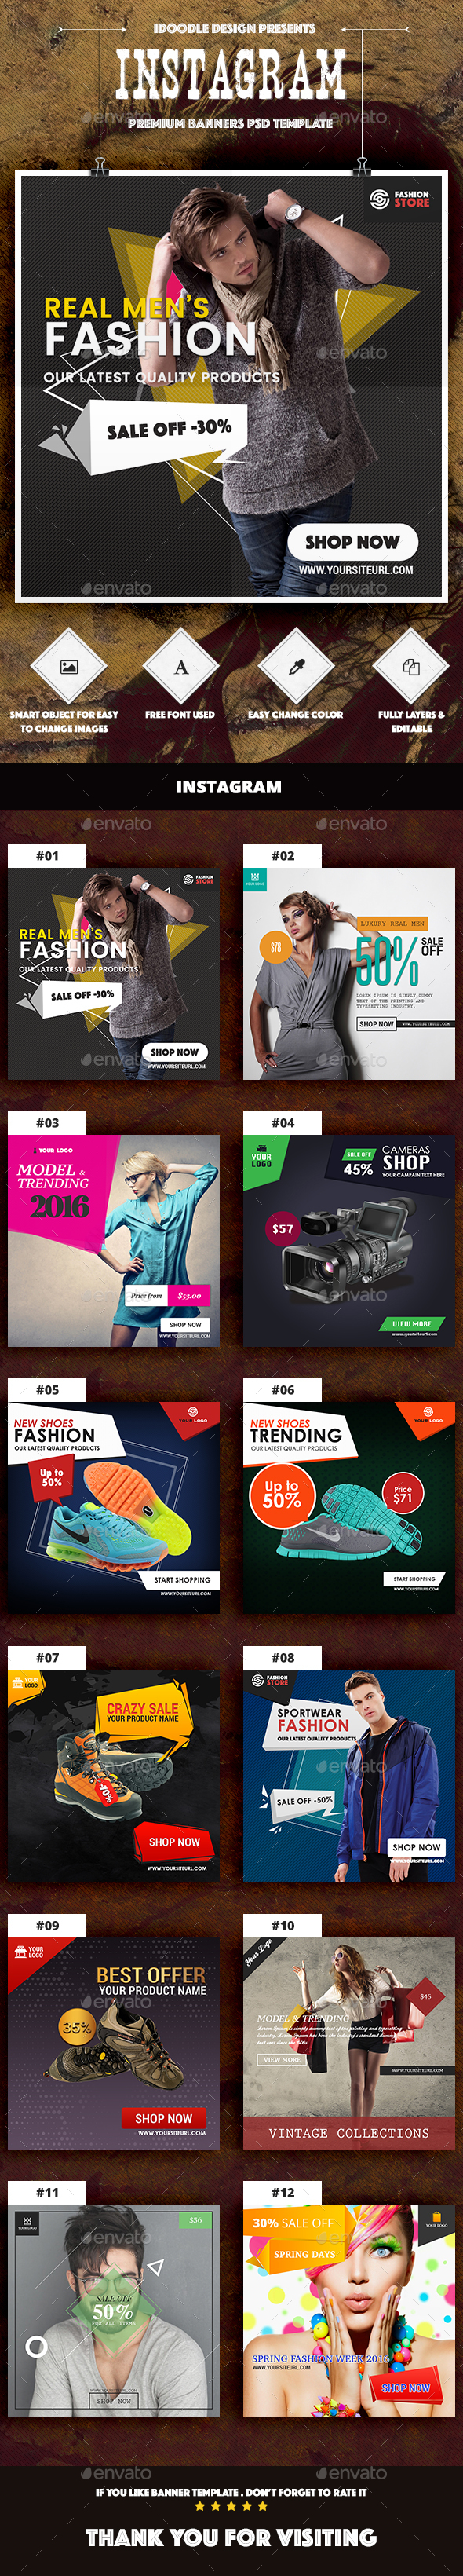 Instagram Product Banners Ads PSD - Instagram ad template